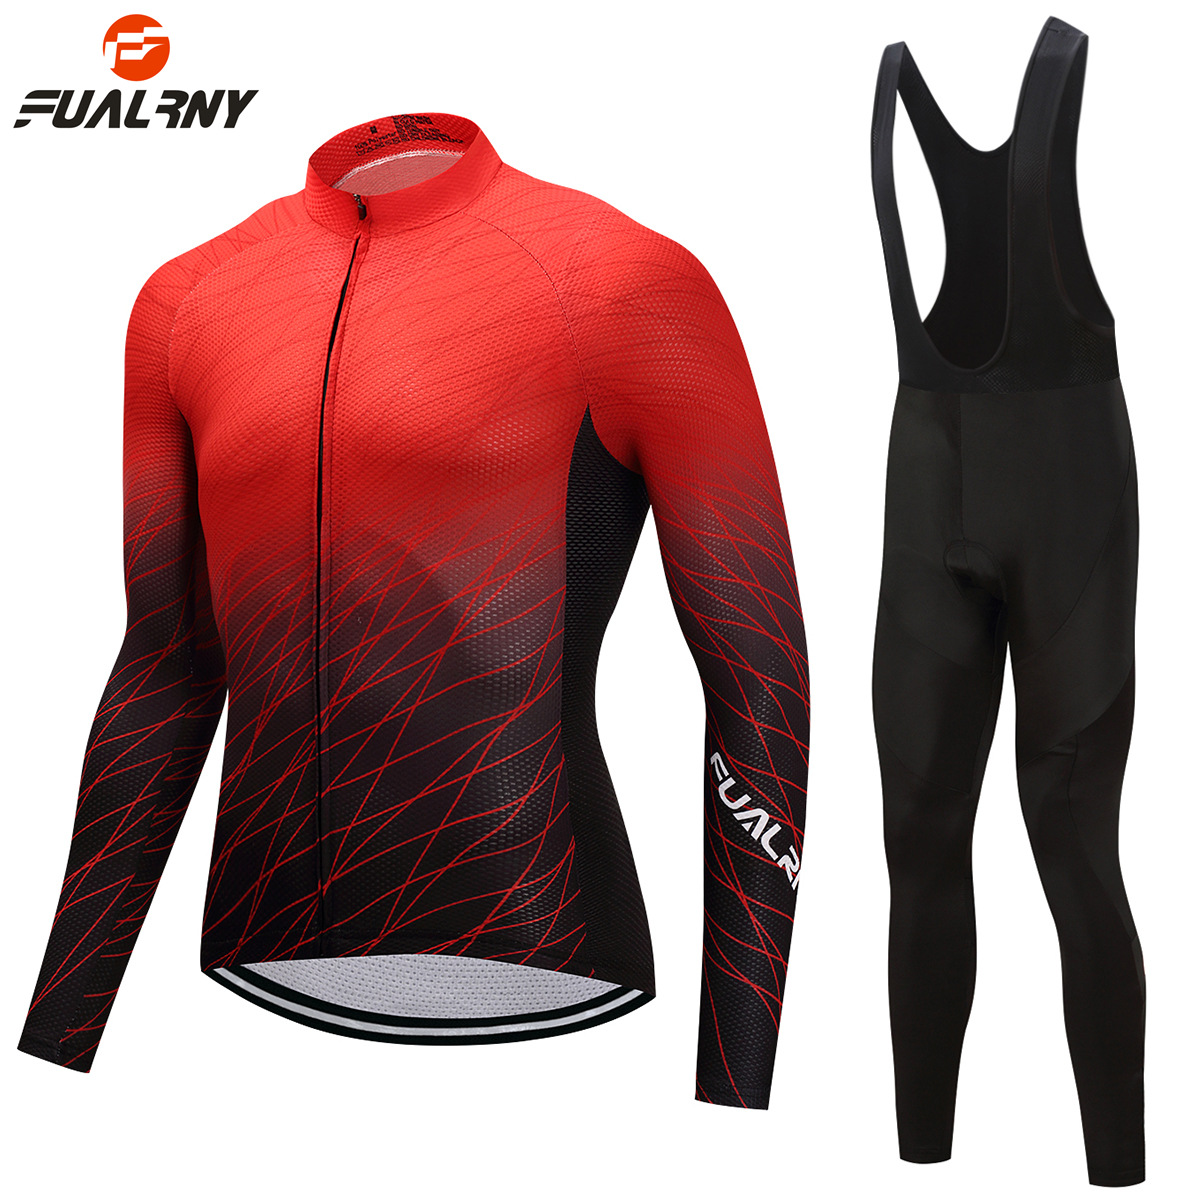 FUALRNY 2018 Pro Breathable/Thermal Fleece Men Women Long Sleeve Cycling Jersey Set Cycling Bike Bicycle MTB Jersey Bib Pants<br>